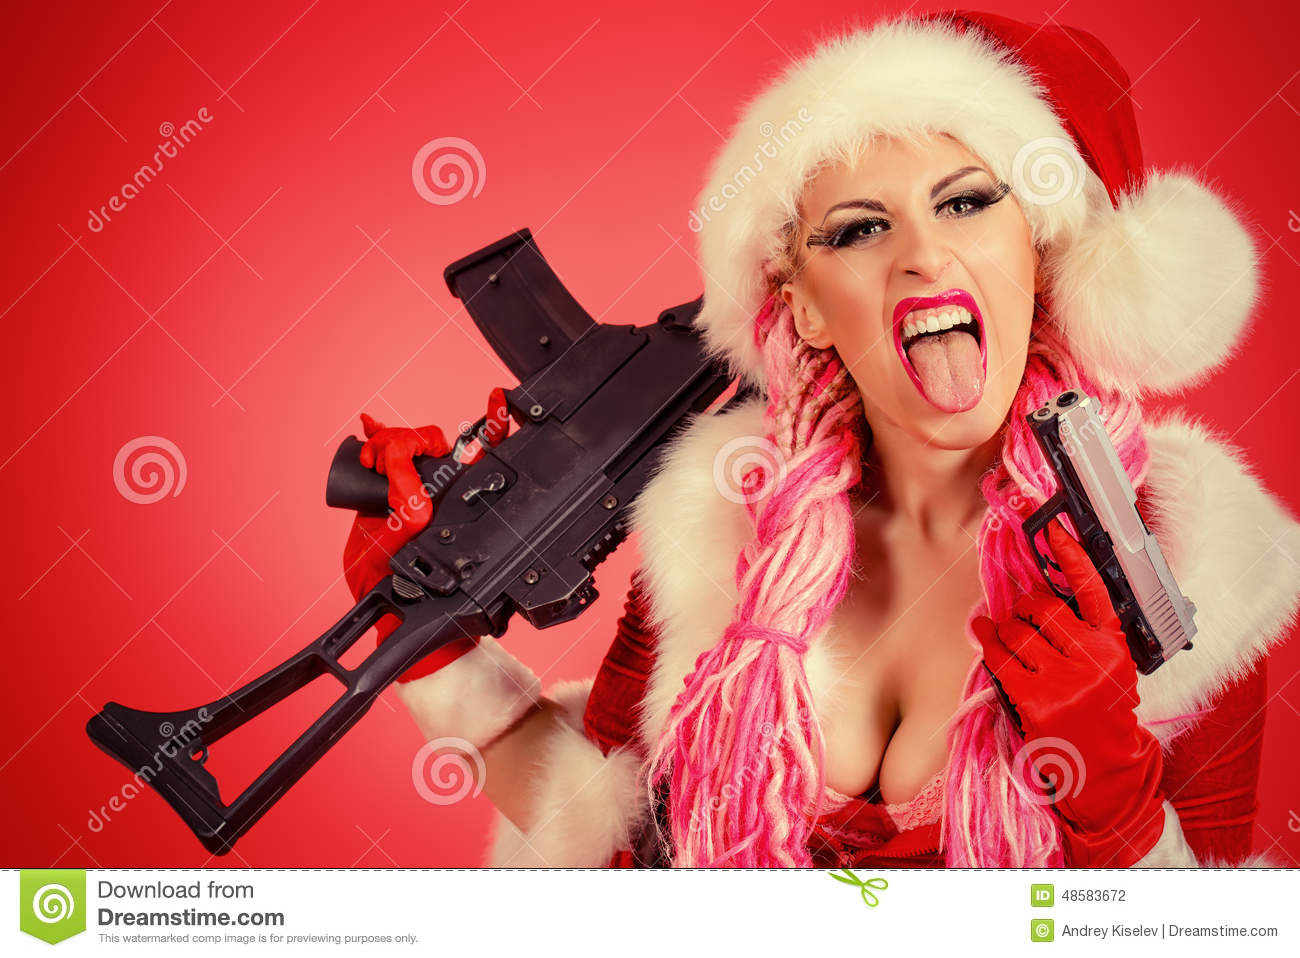 aggressive-gun-expressive-sexy-babe-dressed-as-santa-claus-standing-over-red-background-christmas-48583672.jpg